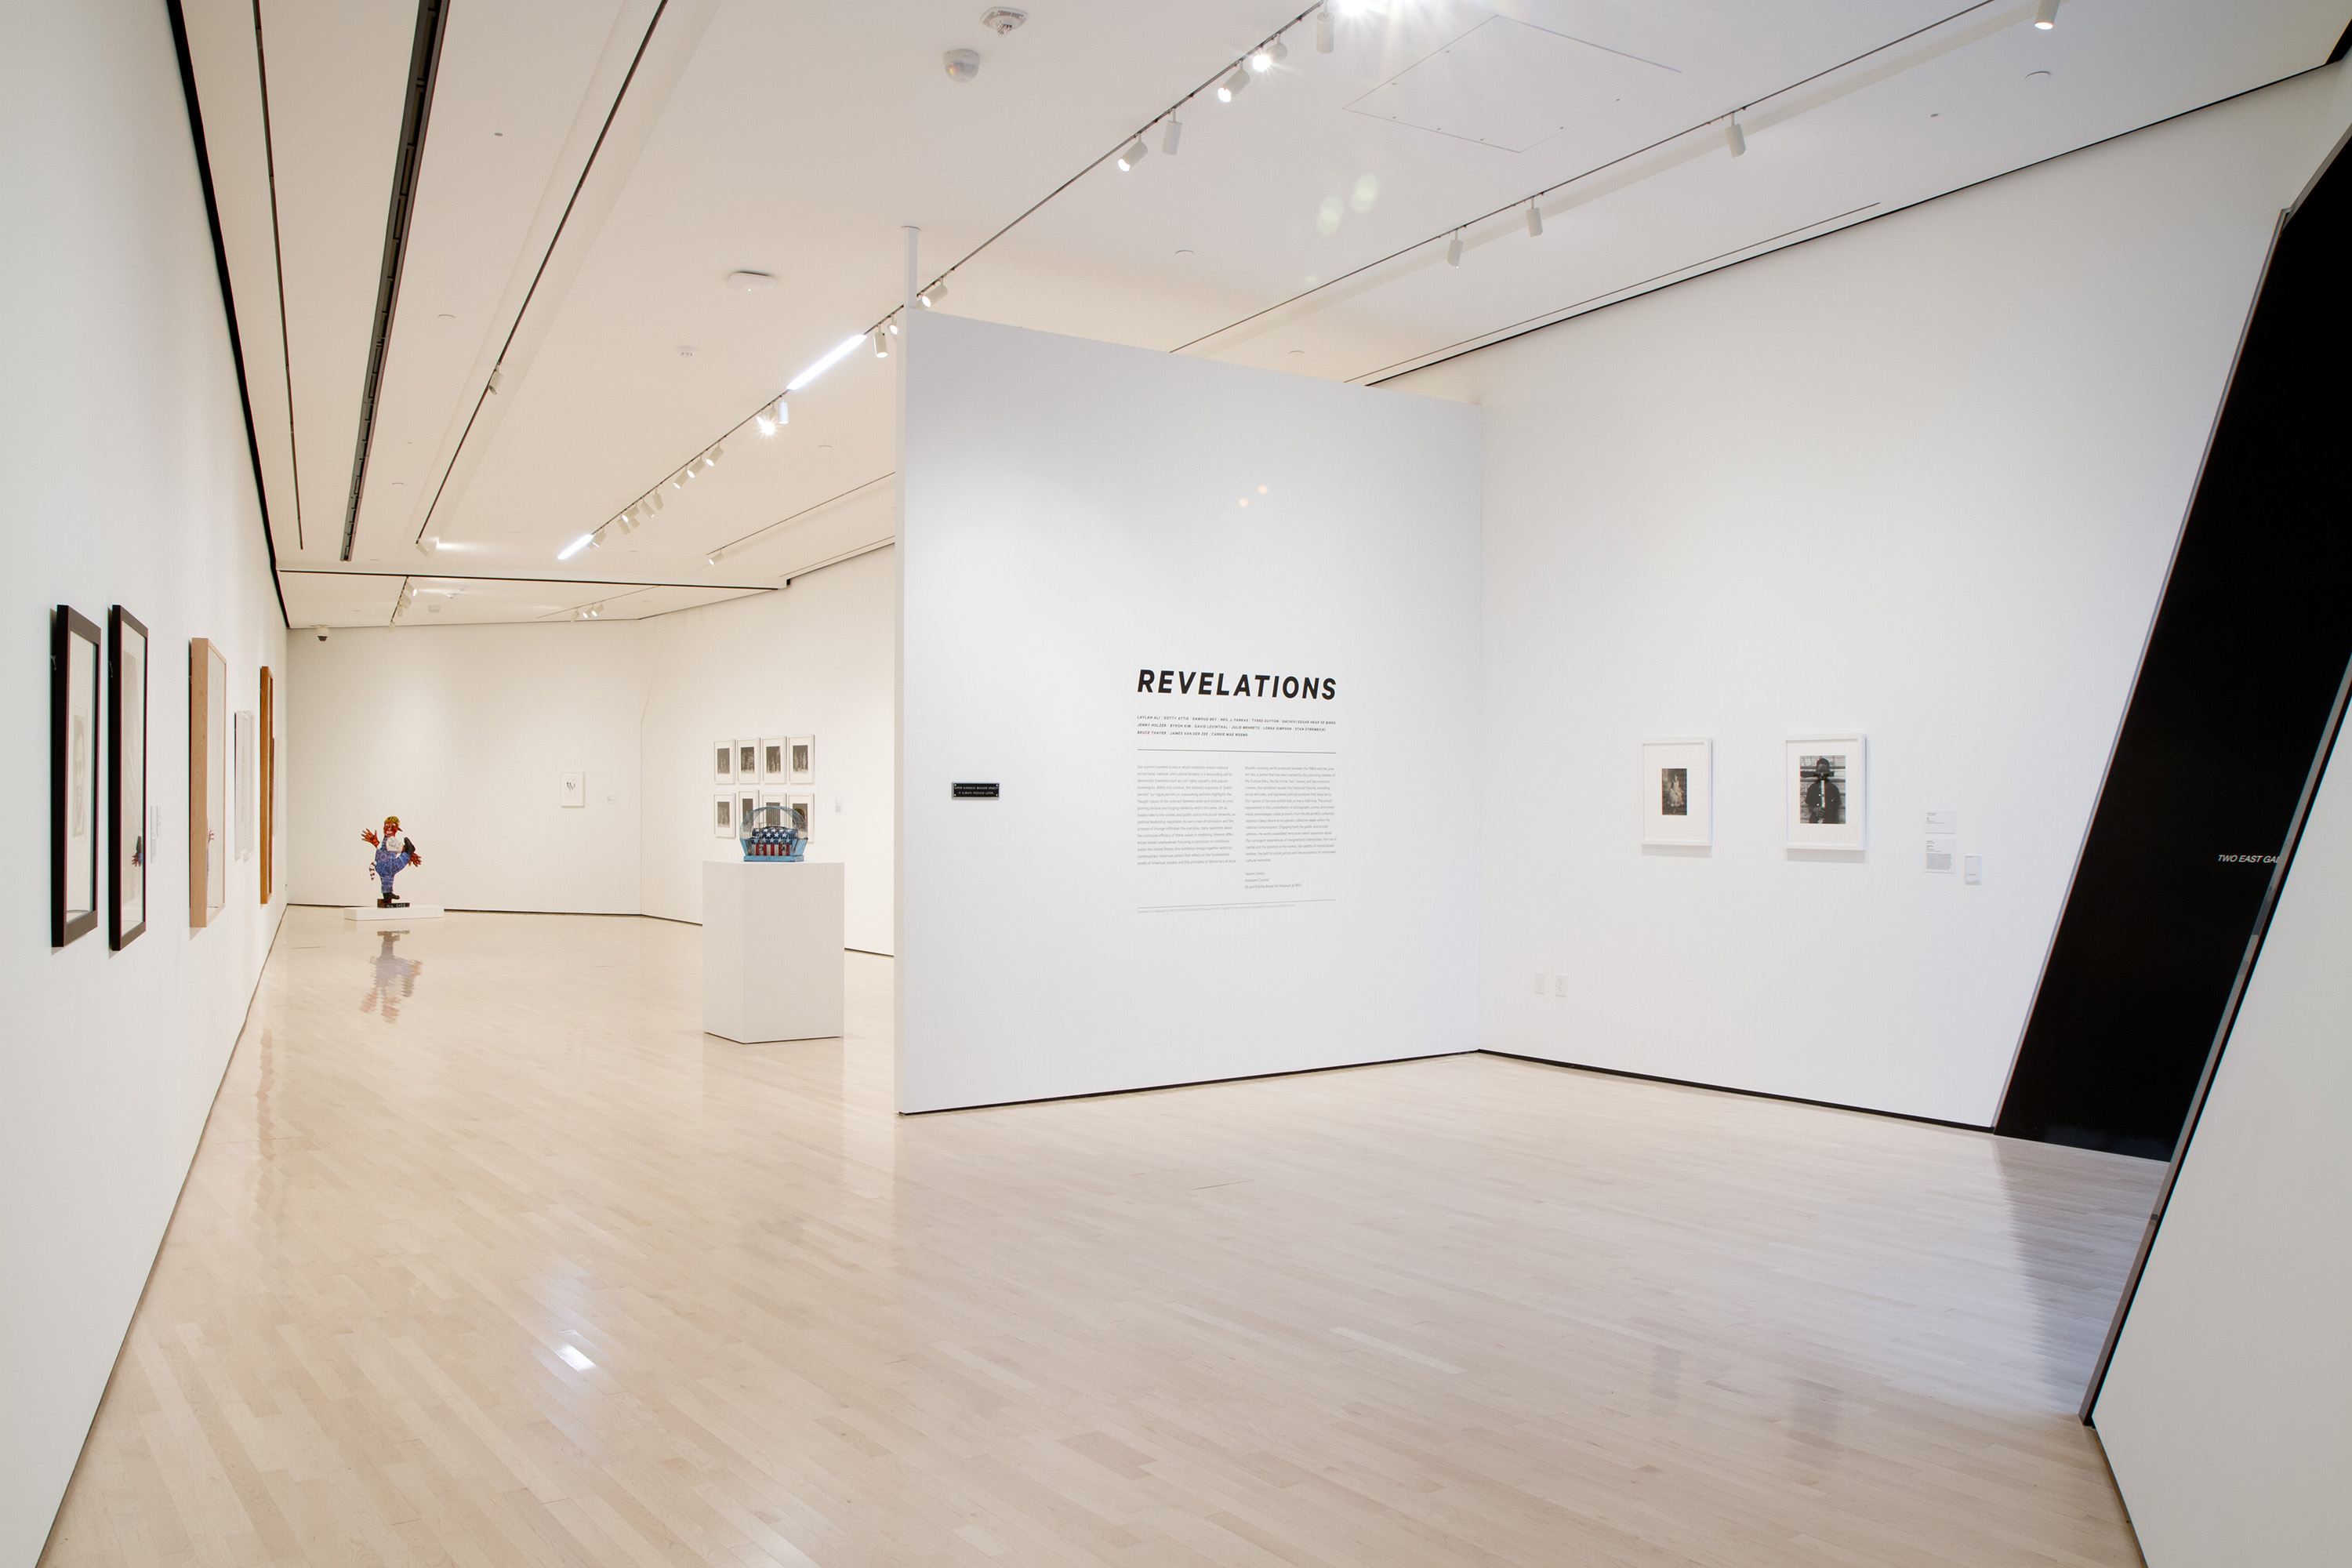 <i>Revelations: Examining Democracy</i>, installation view at the Eli and Edythe Broad Art Museum at MSU, 2013. Photo: Eat Pomegranate Photography